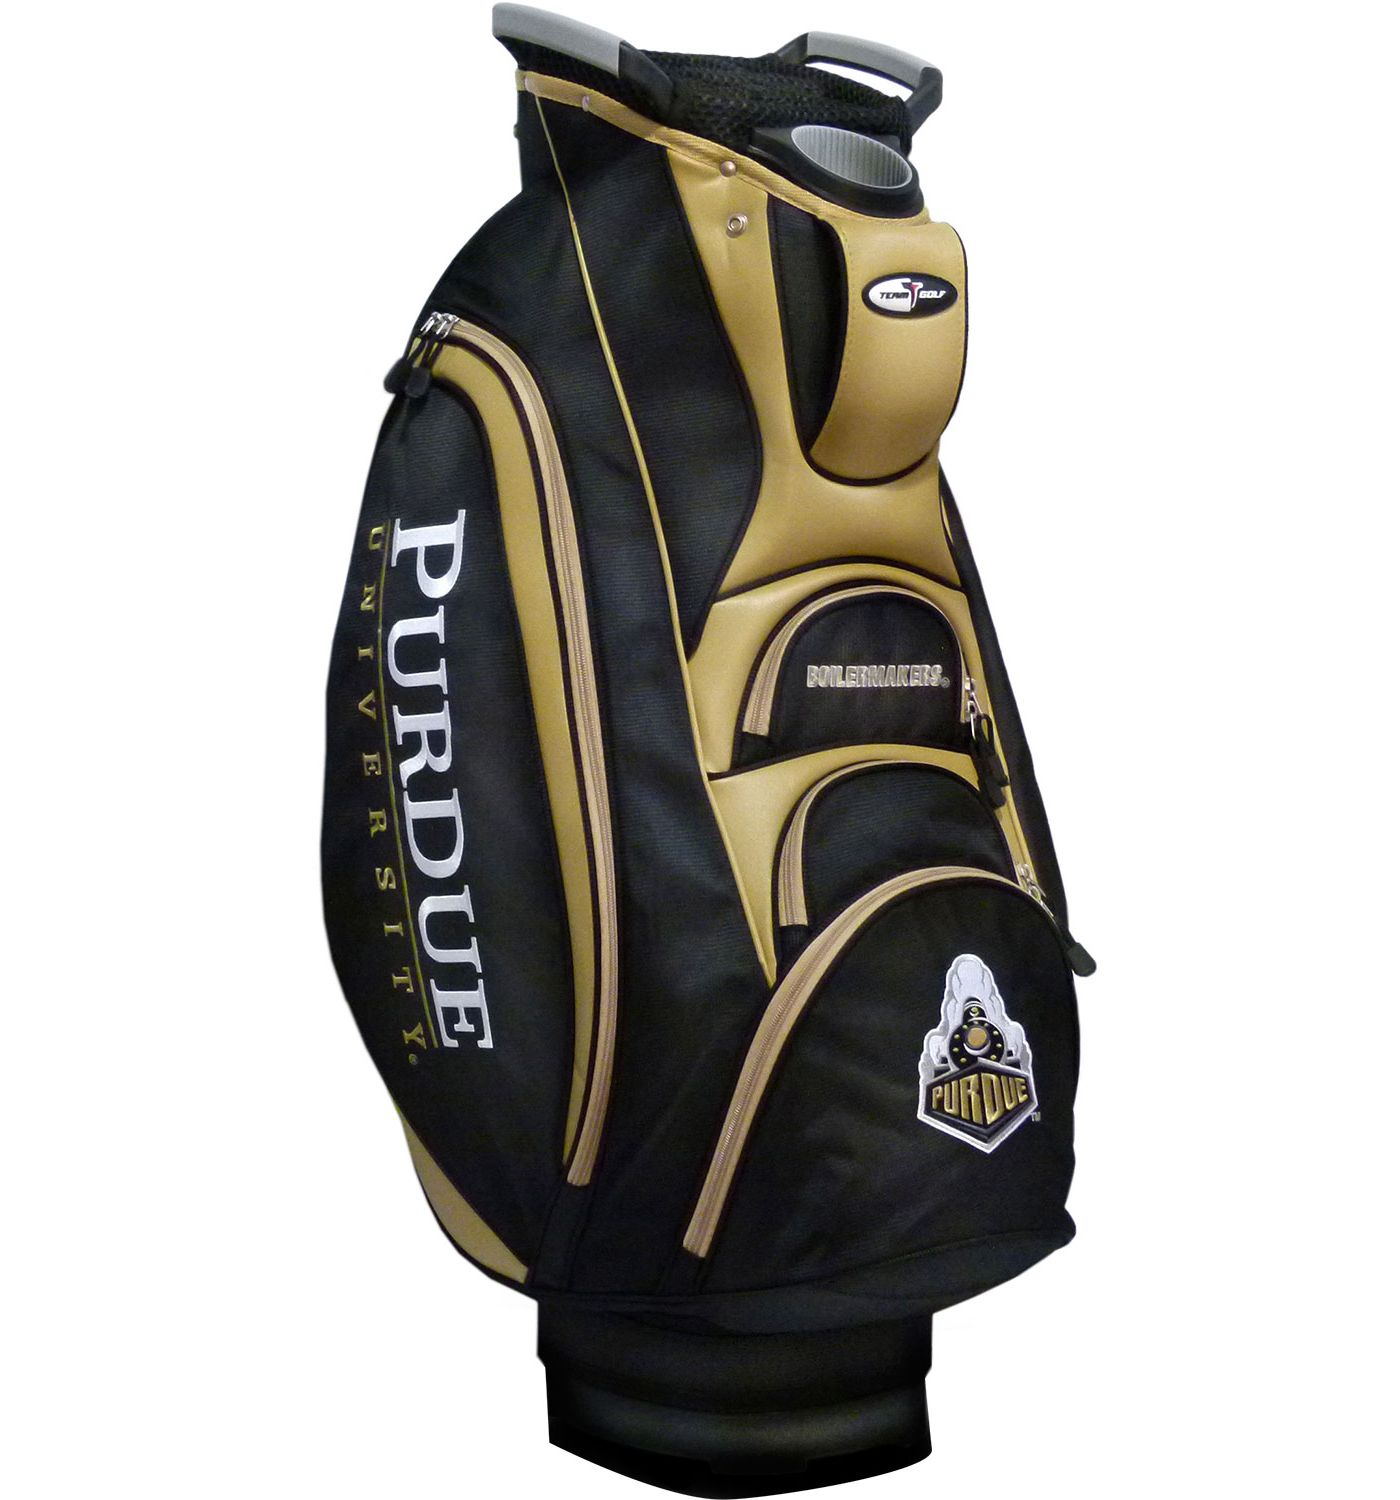 Team Golf Victory Purdue Boilermakers Cart Bag